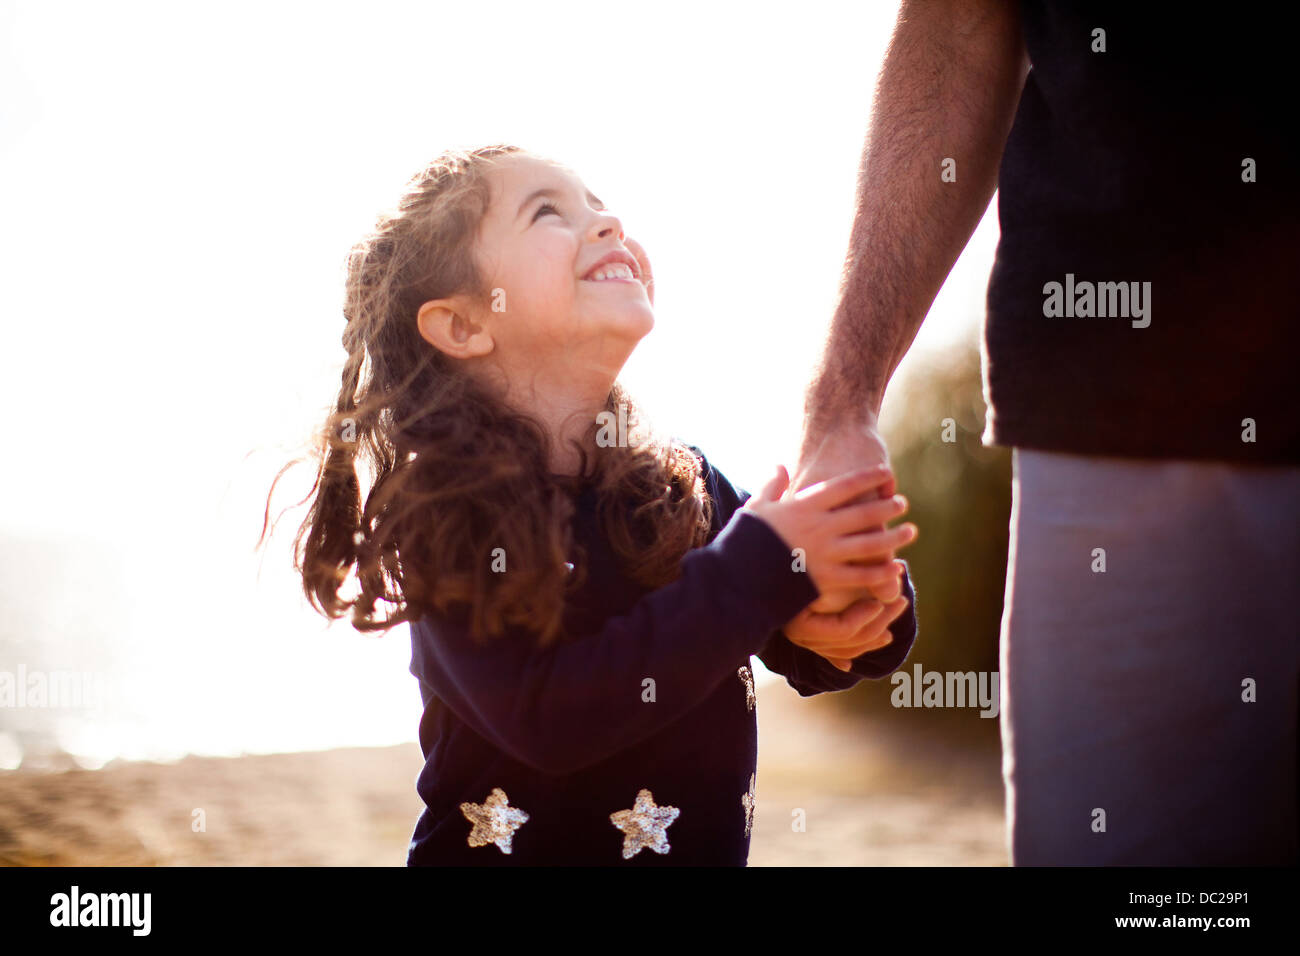 Girl holding father's hand, looking up - Stock Image